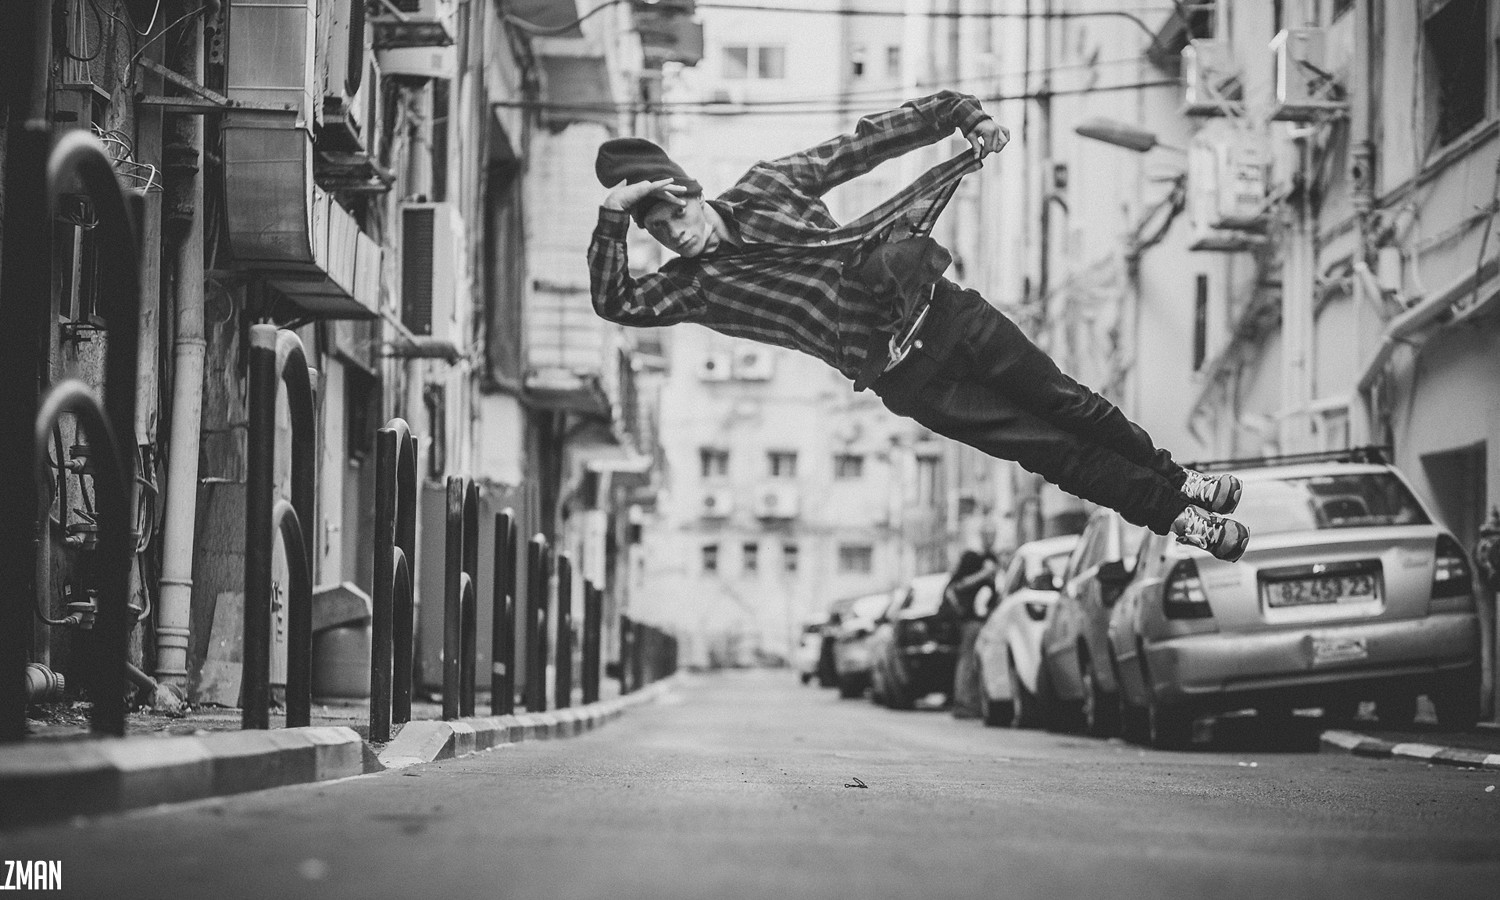 Best of Breakdance on 500px: 35 Kickass Breakdancing Photos